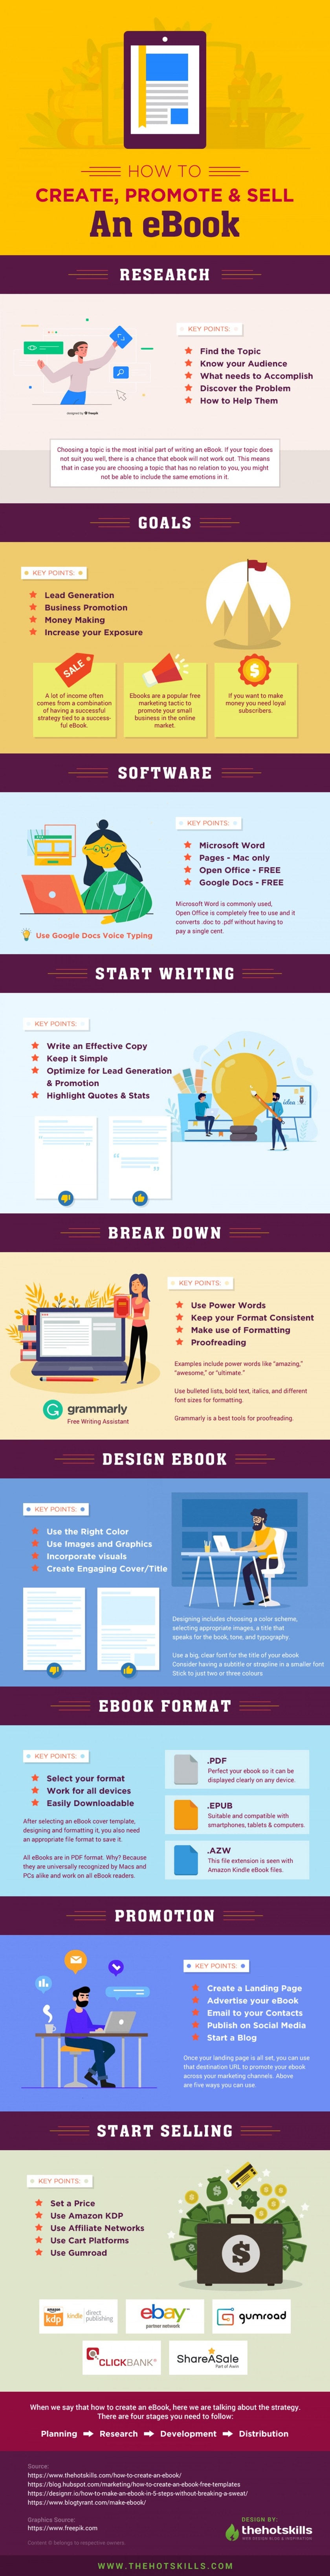 How to create, promote, and sell and ebook - full infographic